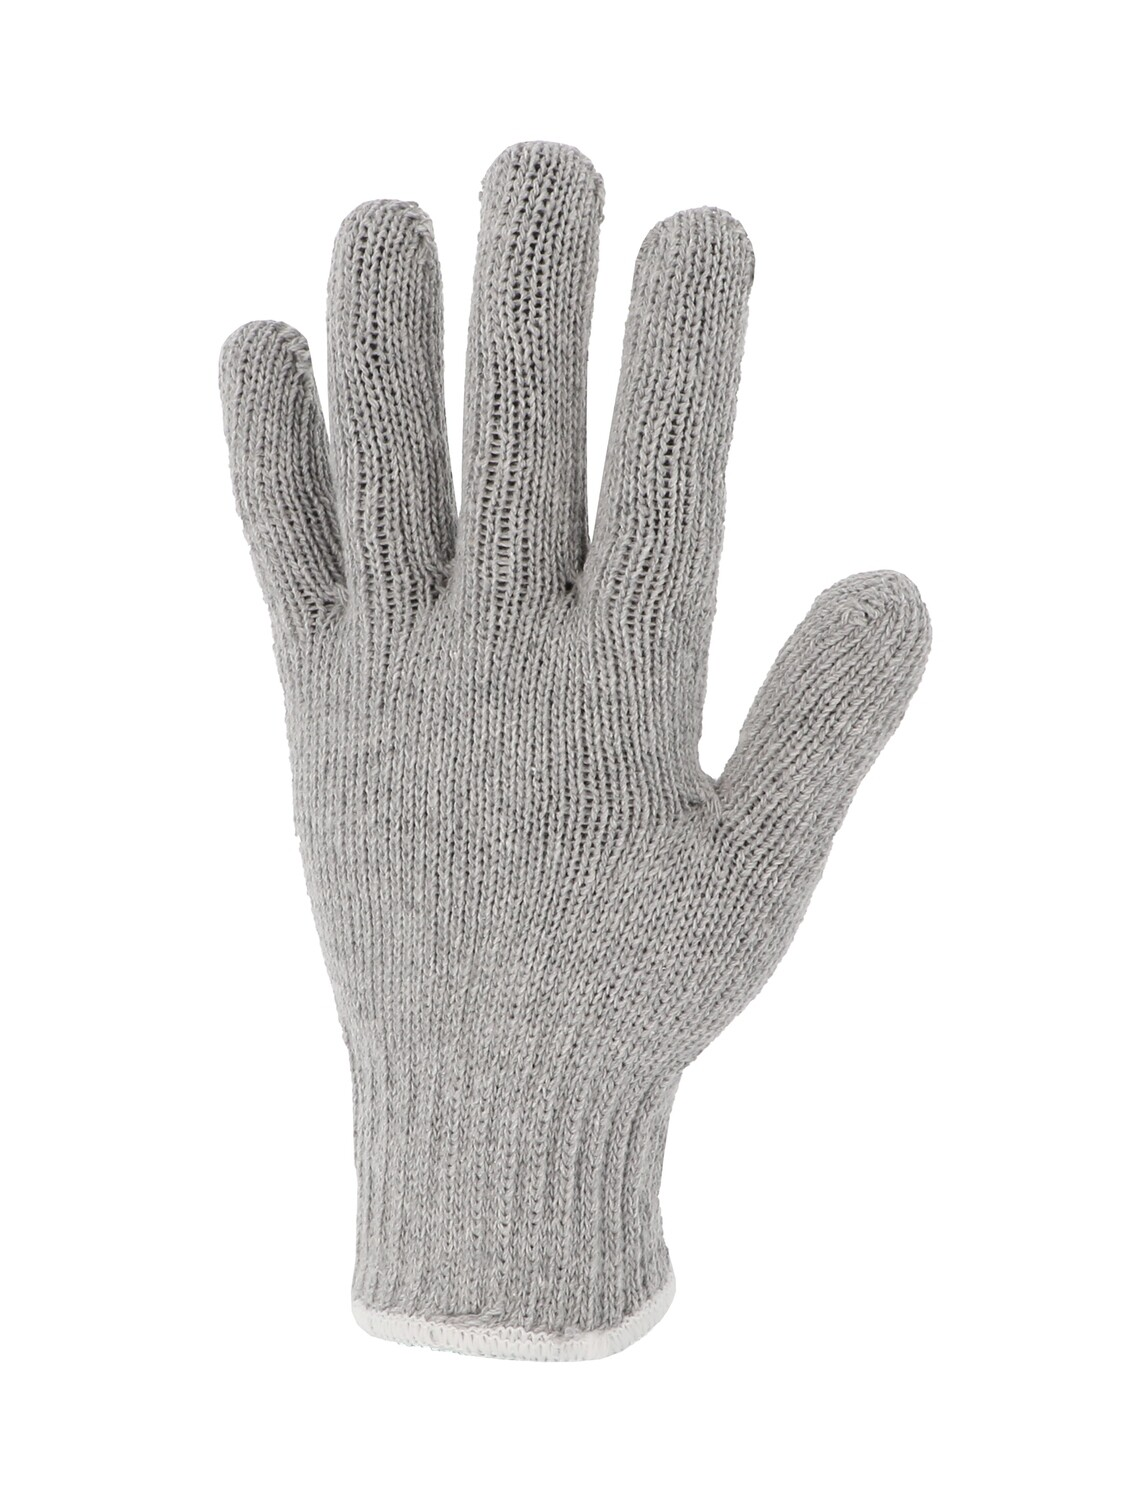 Gant polyester/coton. Jauge 7. Fibres recyclees. (10 paires)